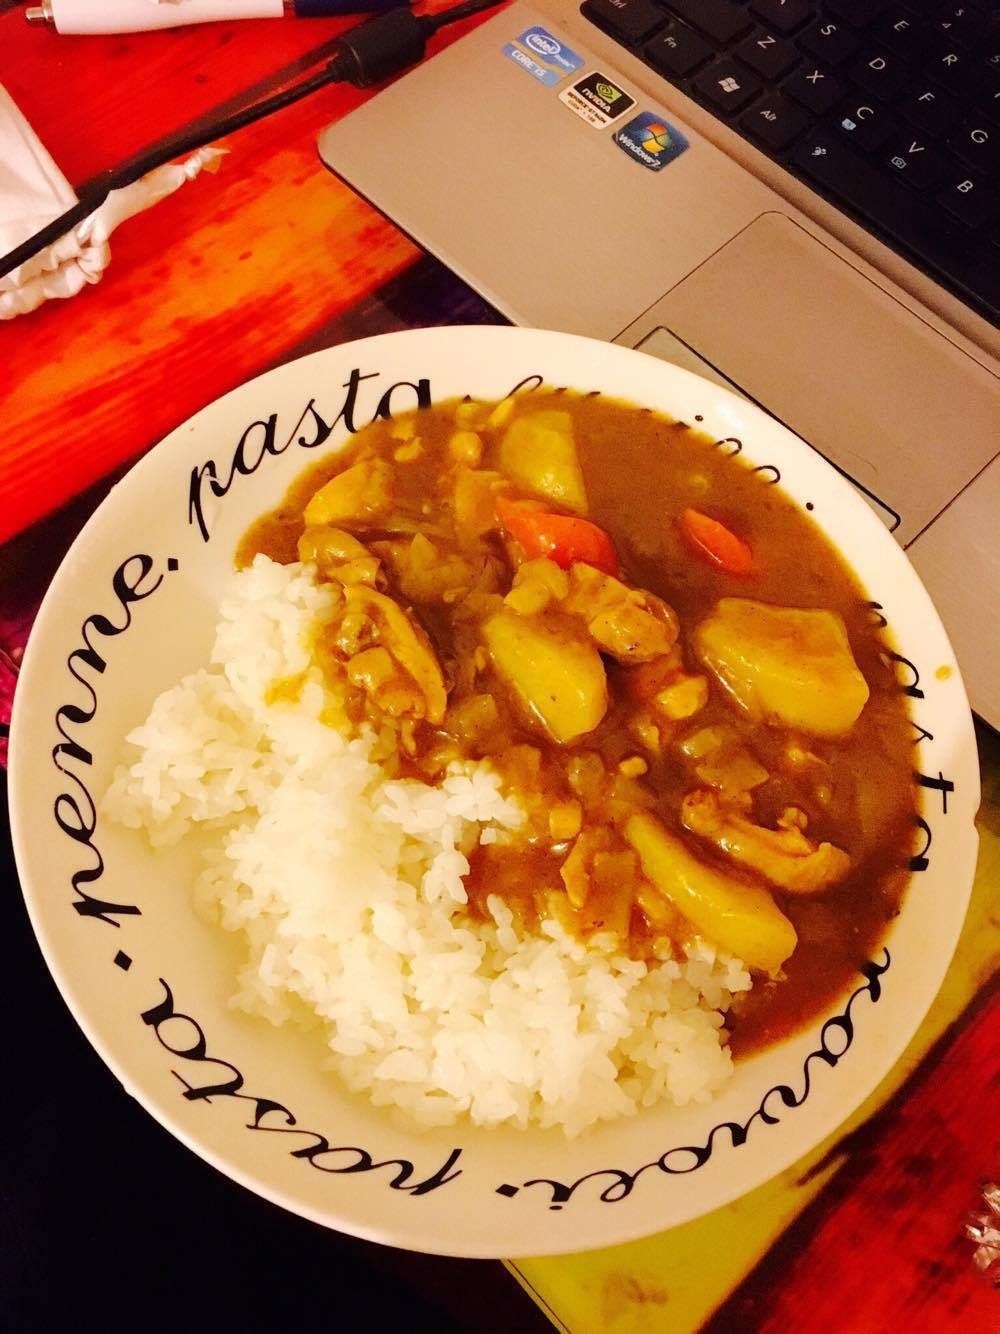 日式咖喱饭 ~ Japanese style curry rice